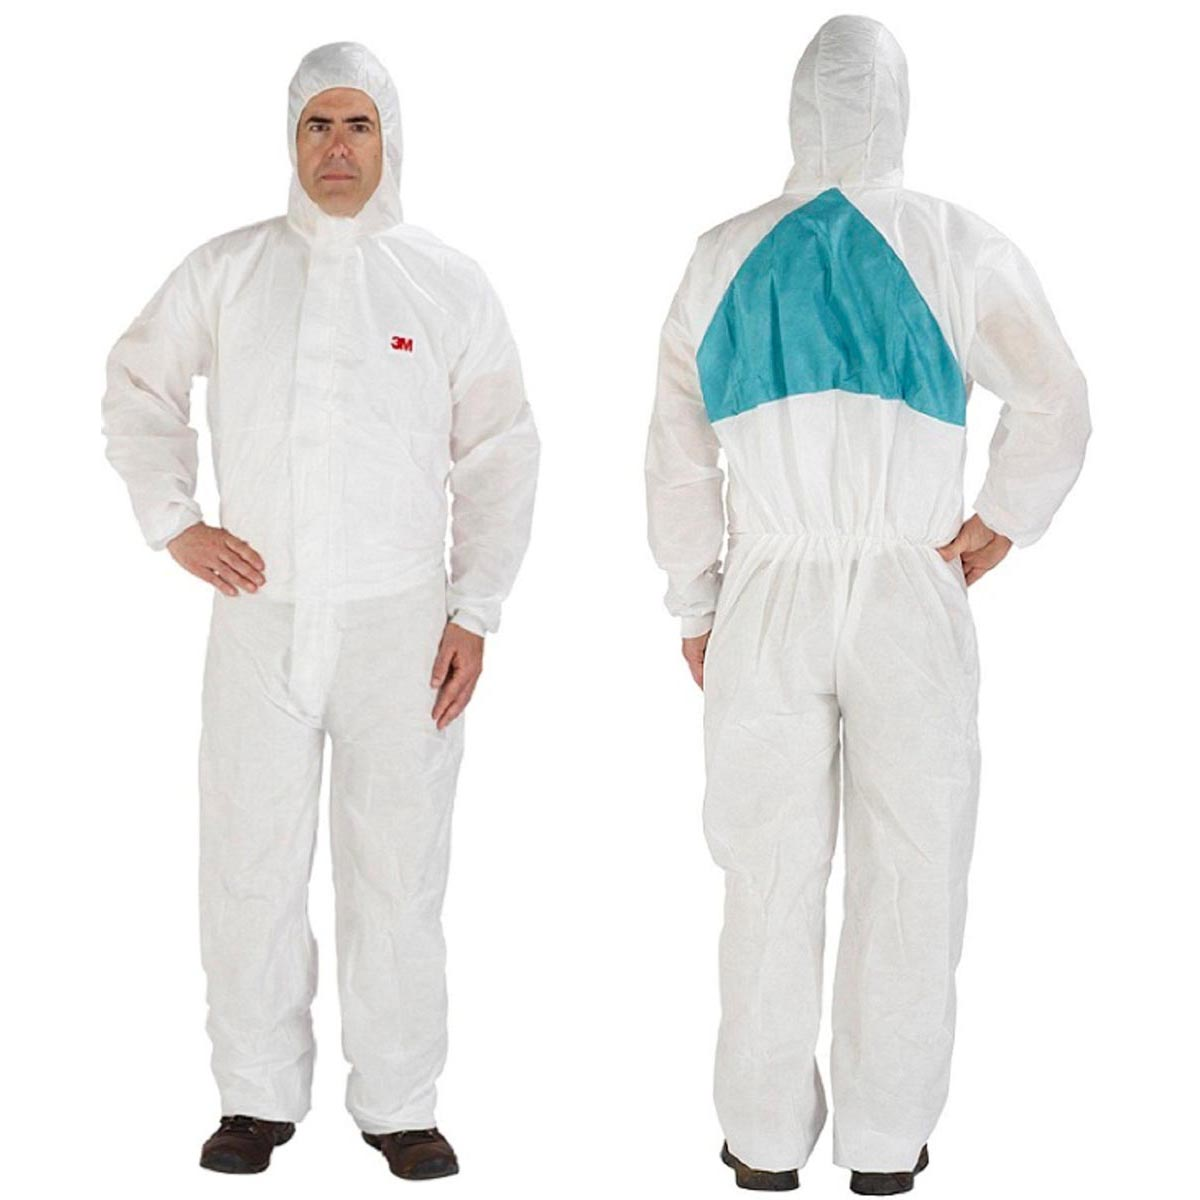 """3Mâ""""¢ Disposable Protective Coverall Safety Work Wear 4520-BLK-XXL"""